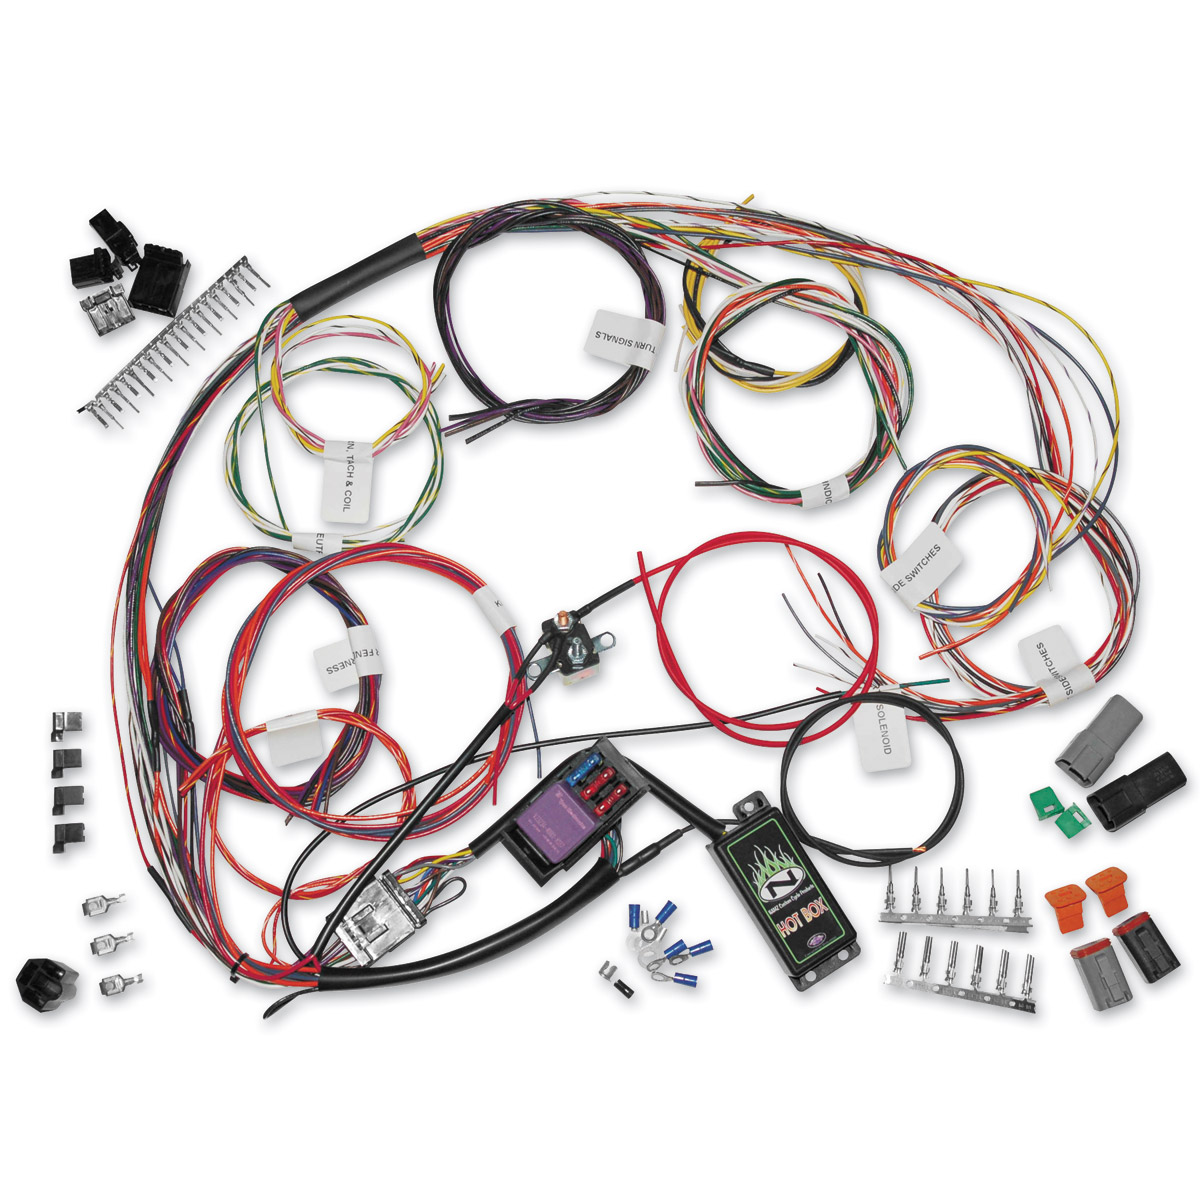 745 072_A harley davidson sportster wiring harness kits j&p cycles harley davidson sportster wiring harness at aneh.co